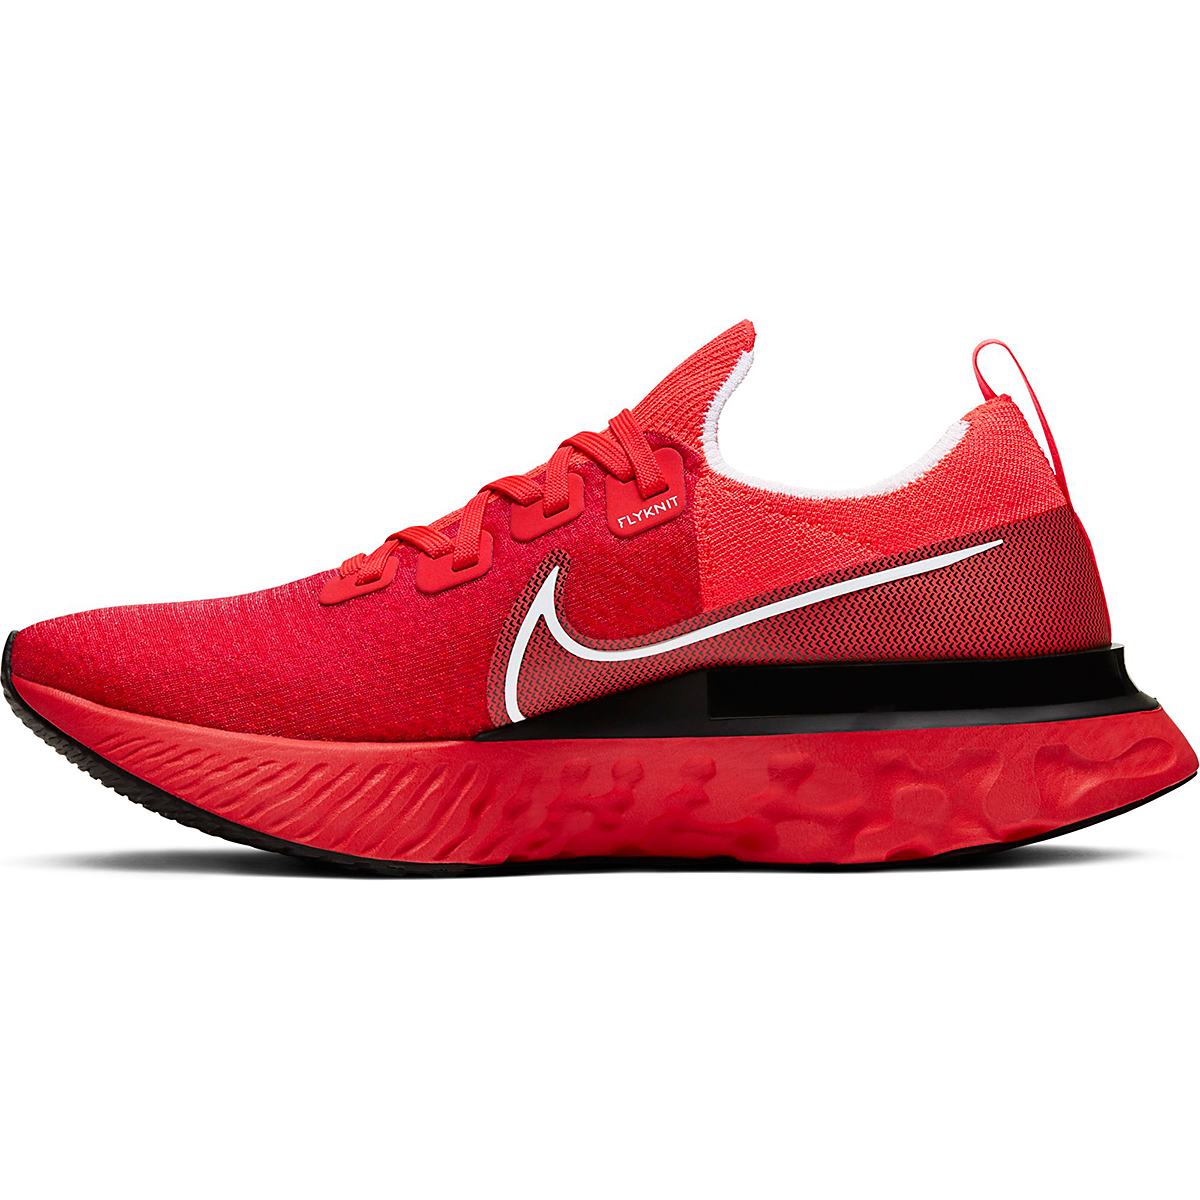 Men's Nike React Infinity Run Flyknit Running Shoe - Color: Bright Crimson - Size: 6 - Width: Regular, Bright Crimson, large, image 2